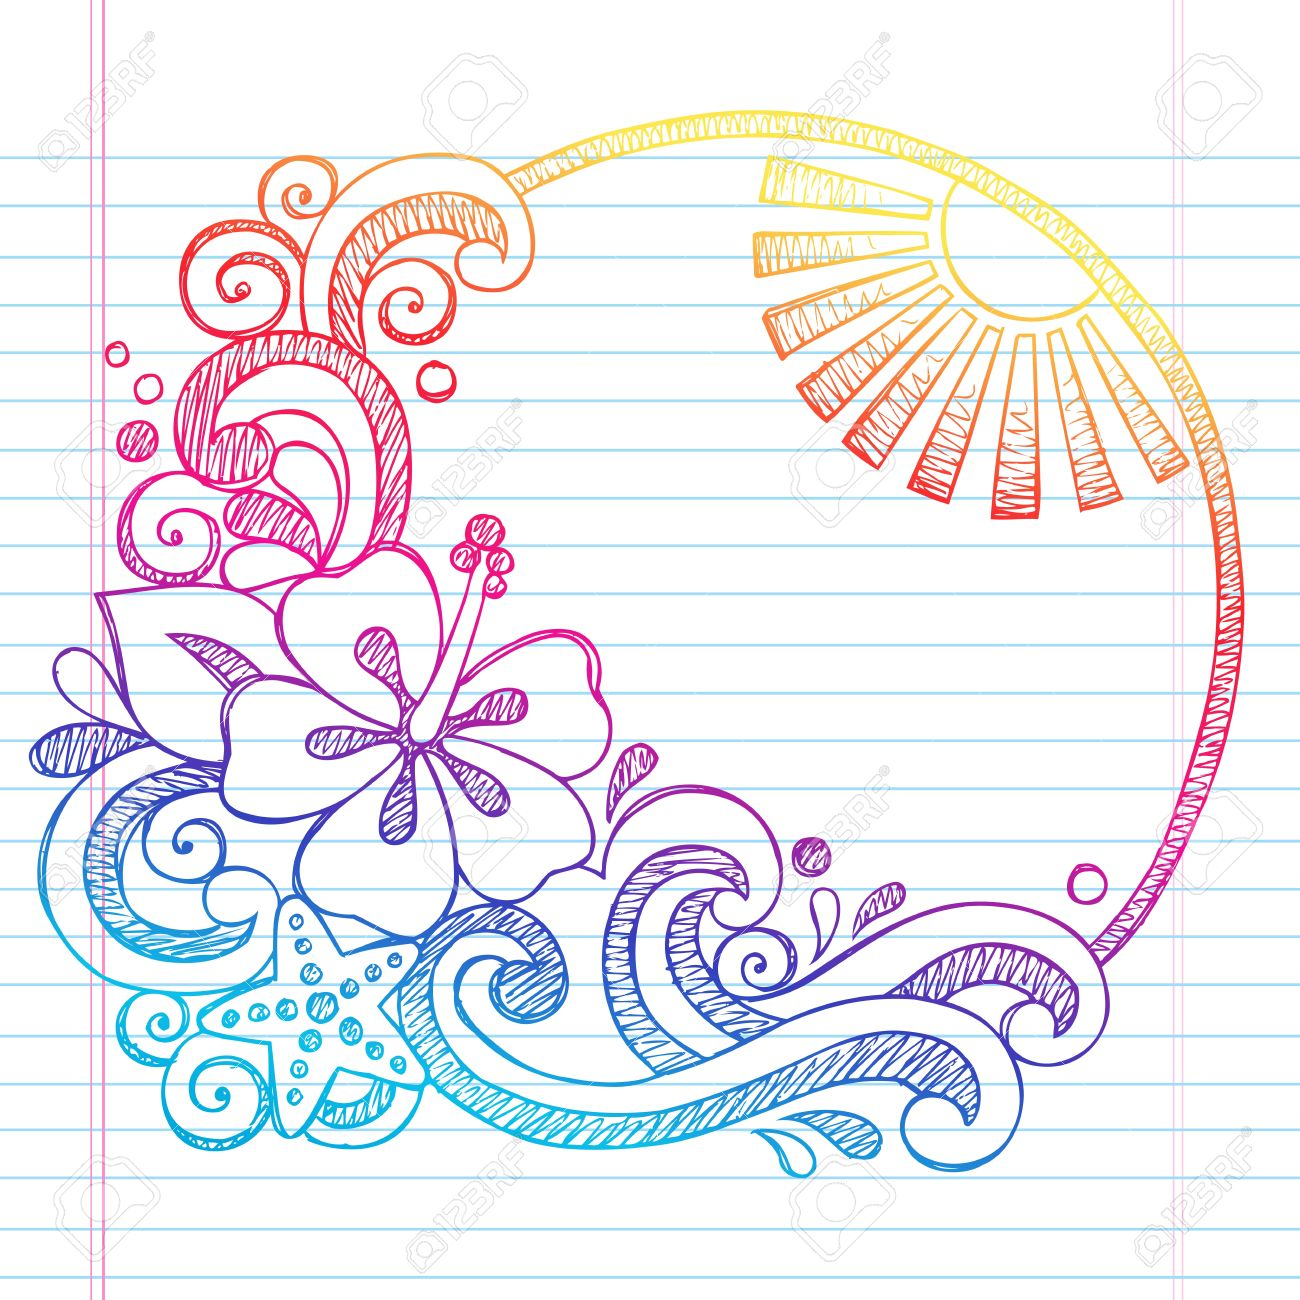 Hibiscus Flower Tropical Beach Summer Vacation Sketchy Notebook Doodles- Hand Drawn  Illustration on Lined Sketchbook Paper Background Stock Vector - 19475573